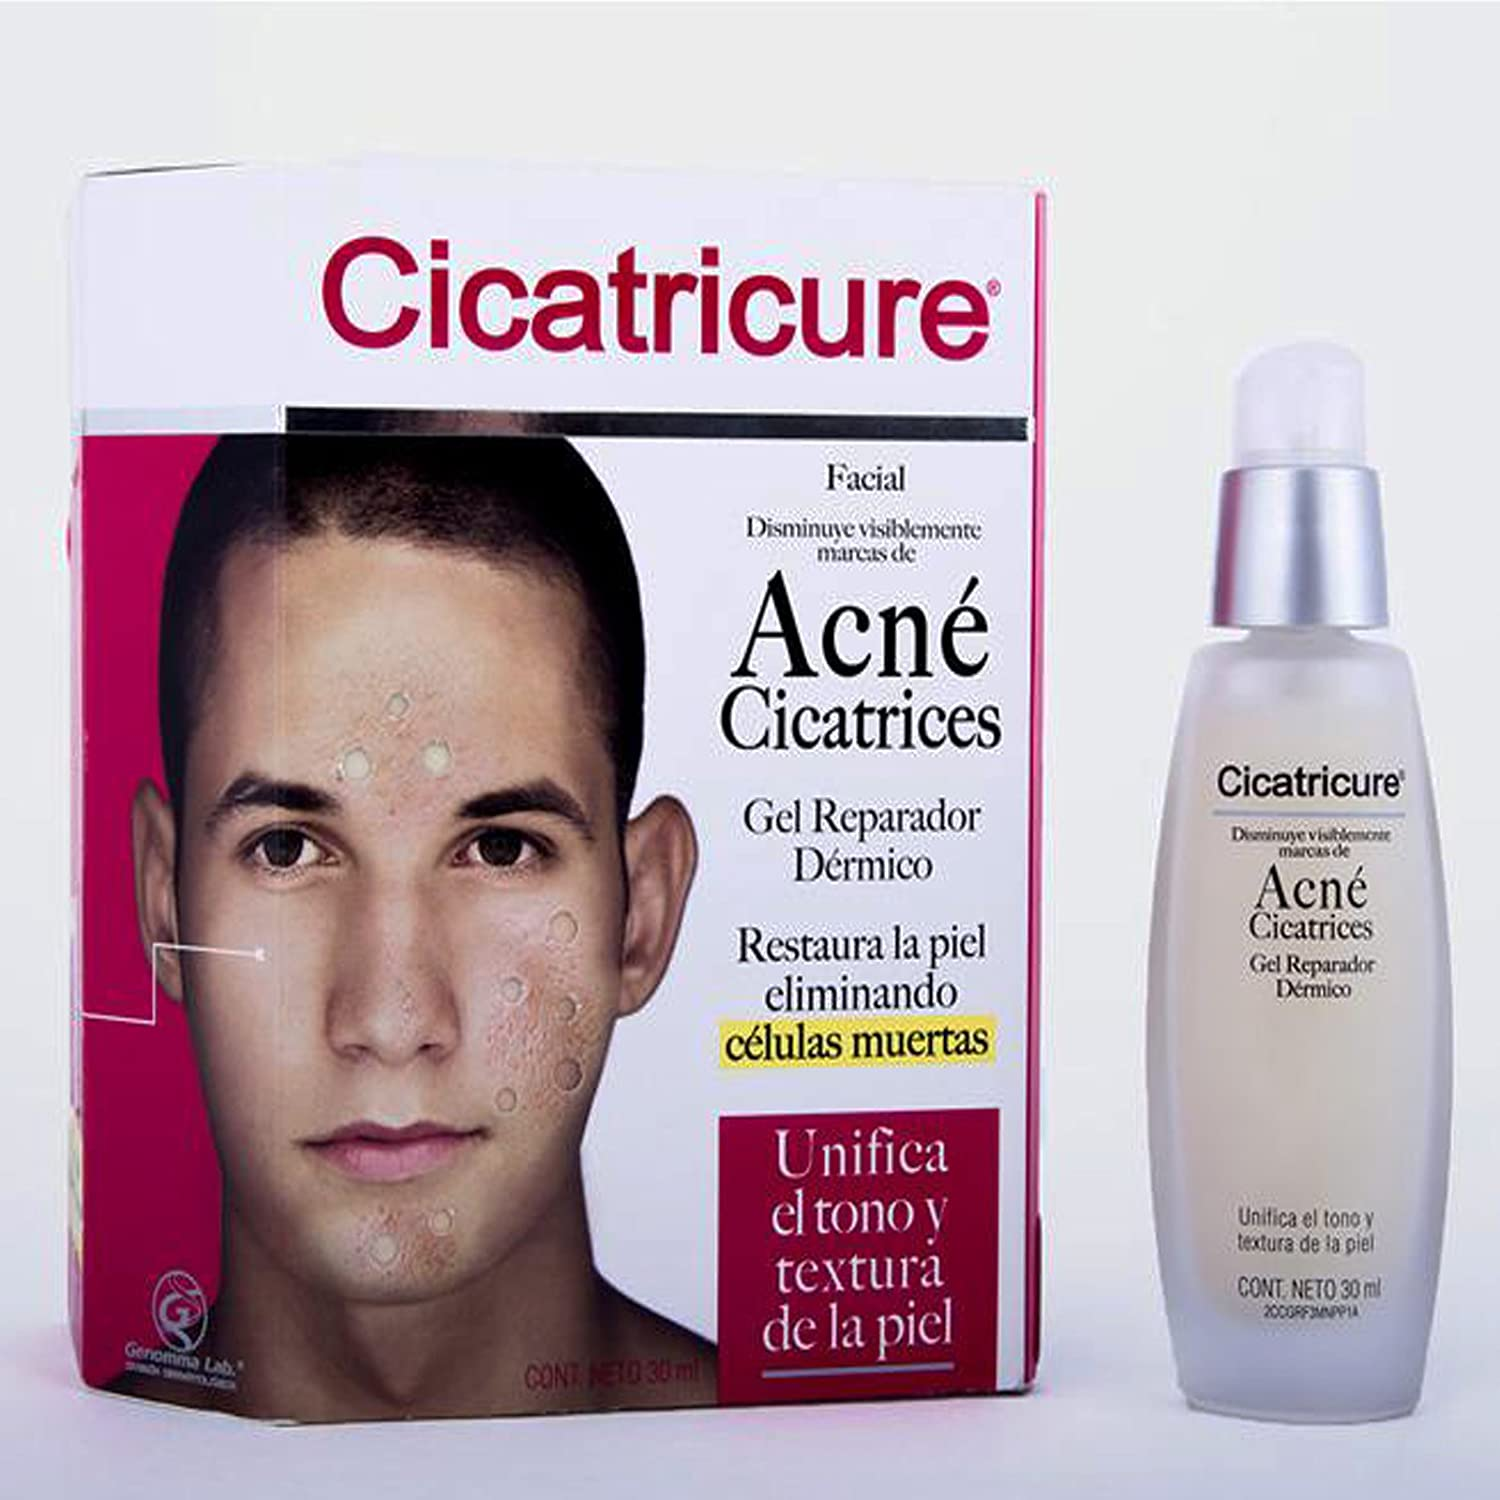 Buy cicatricure visibly decreased facial acne marks scars buy cicatricure visibly decreased facial acne marks scars repairing dermal gel restores the skin removes dead cells unifies the tone and texture of the fandeluxe Images